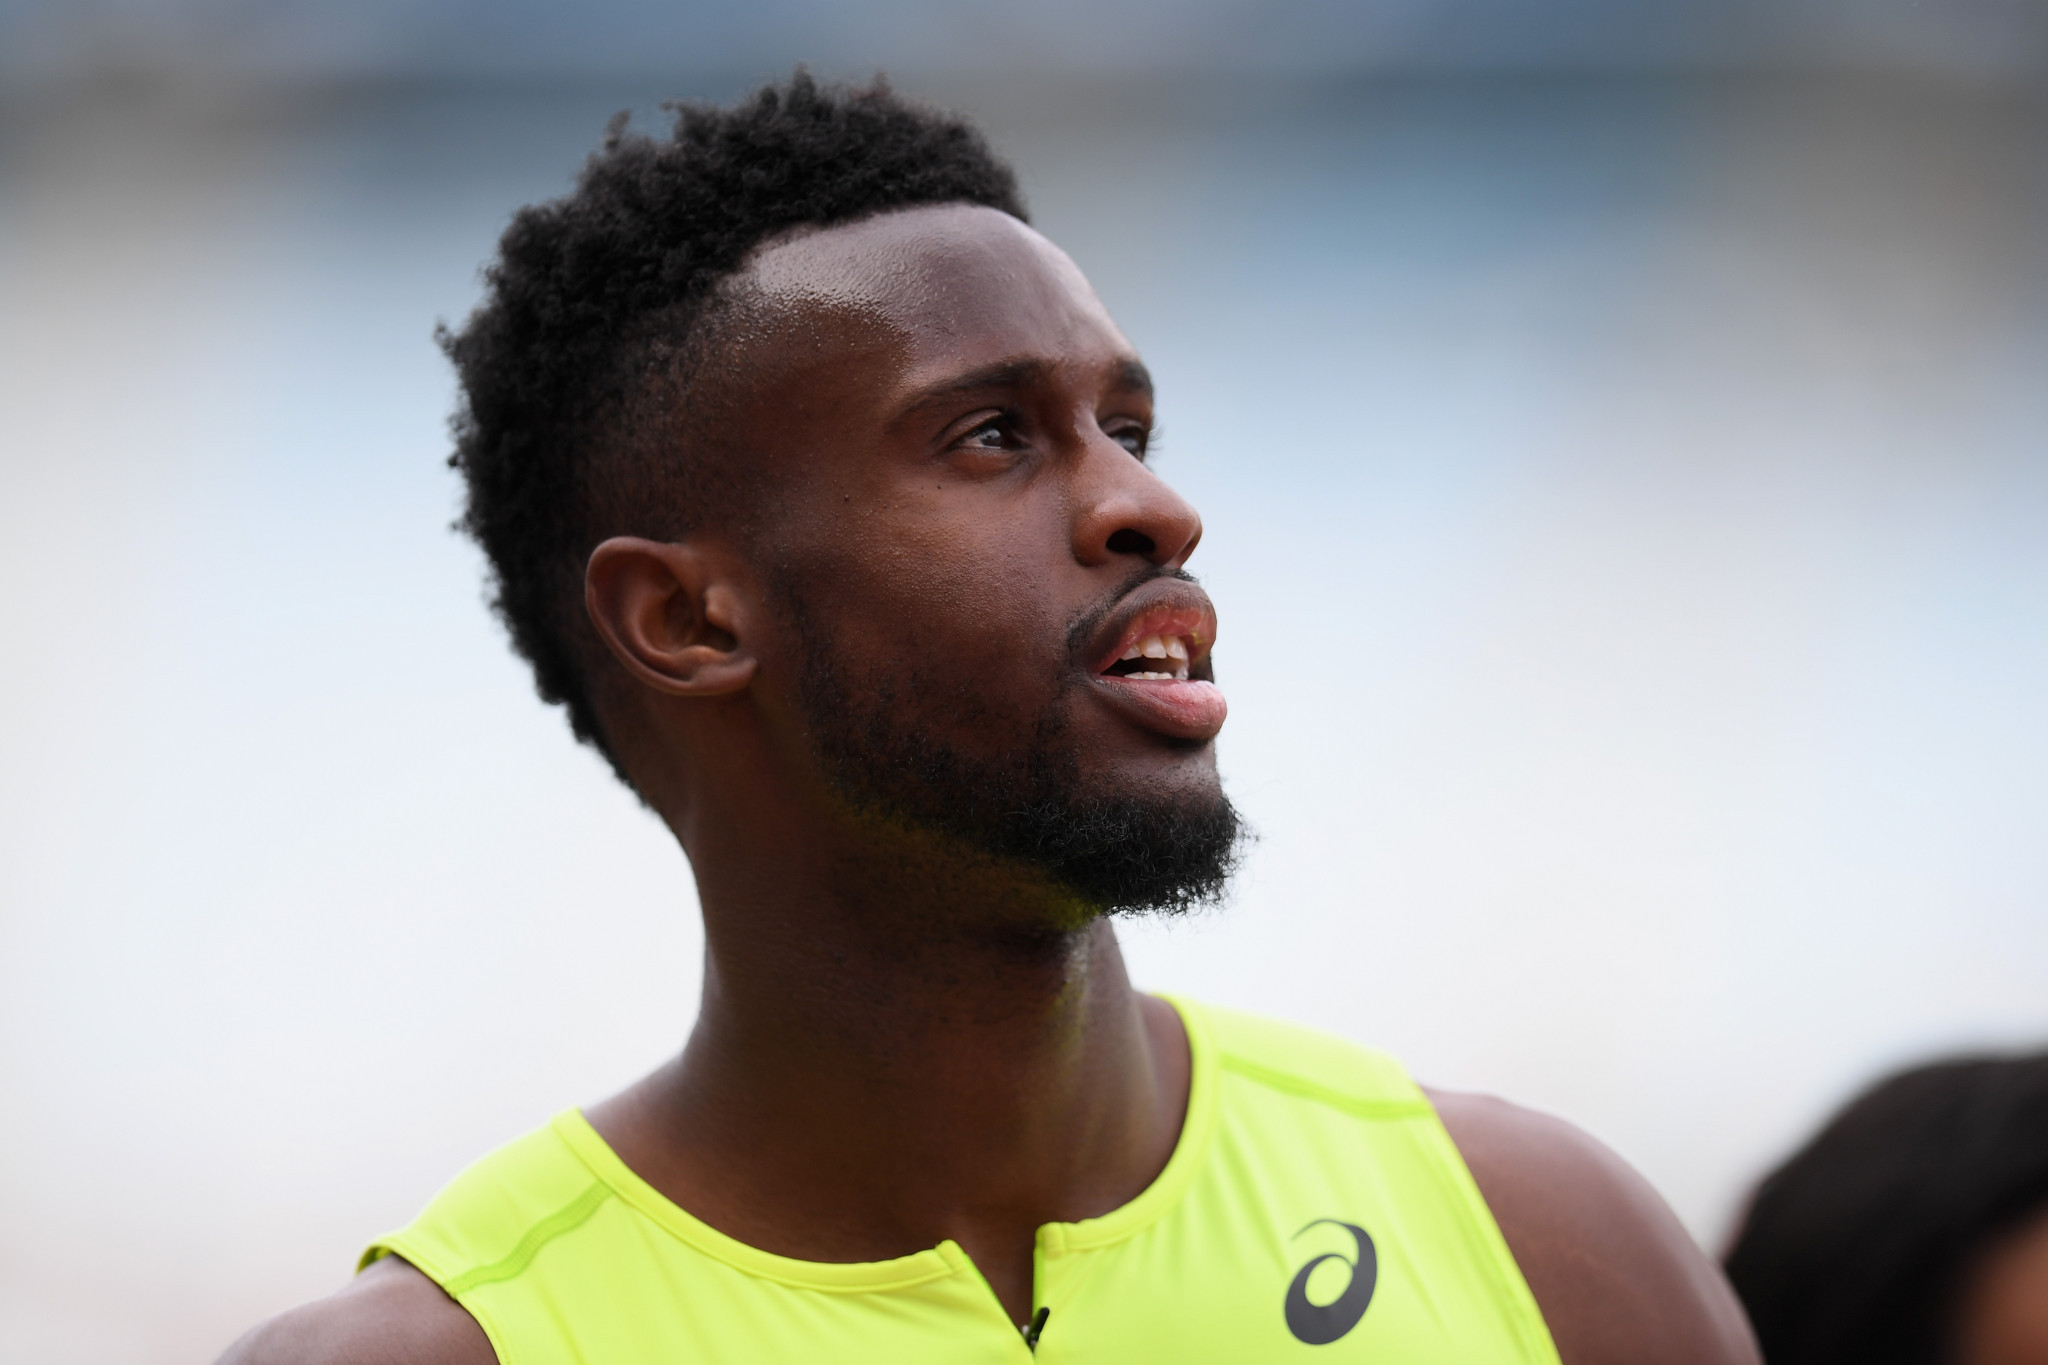 American long jumper Lawson suspended by Athletics Integrity Unit for drug failure